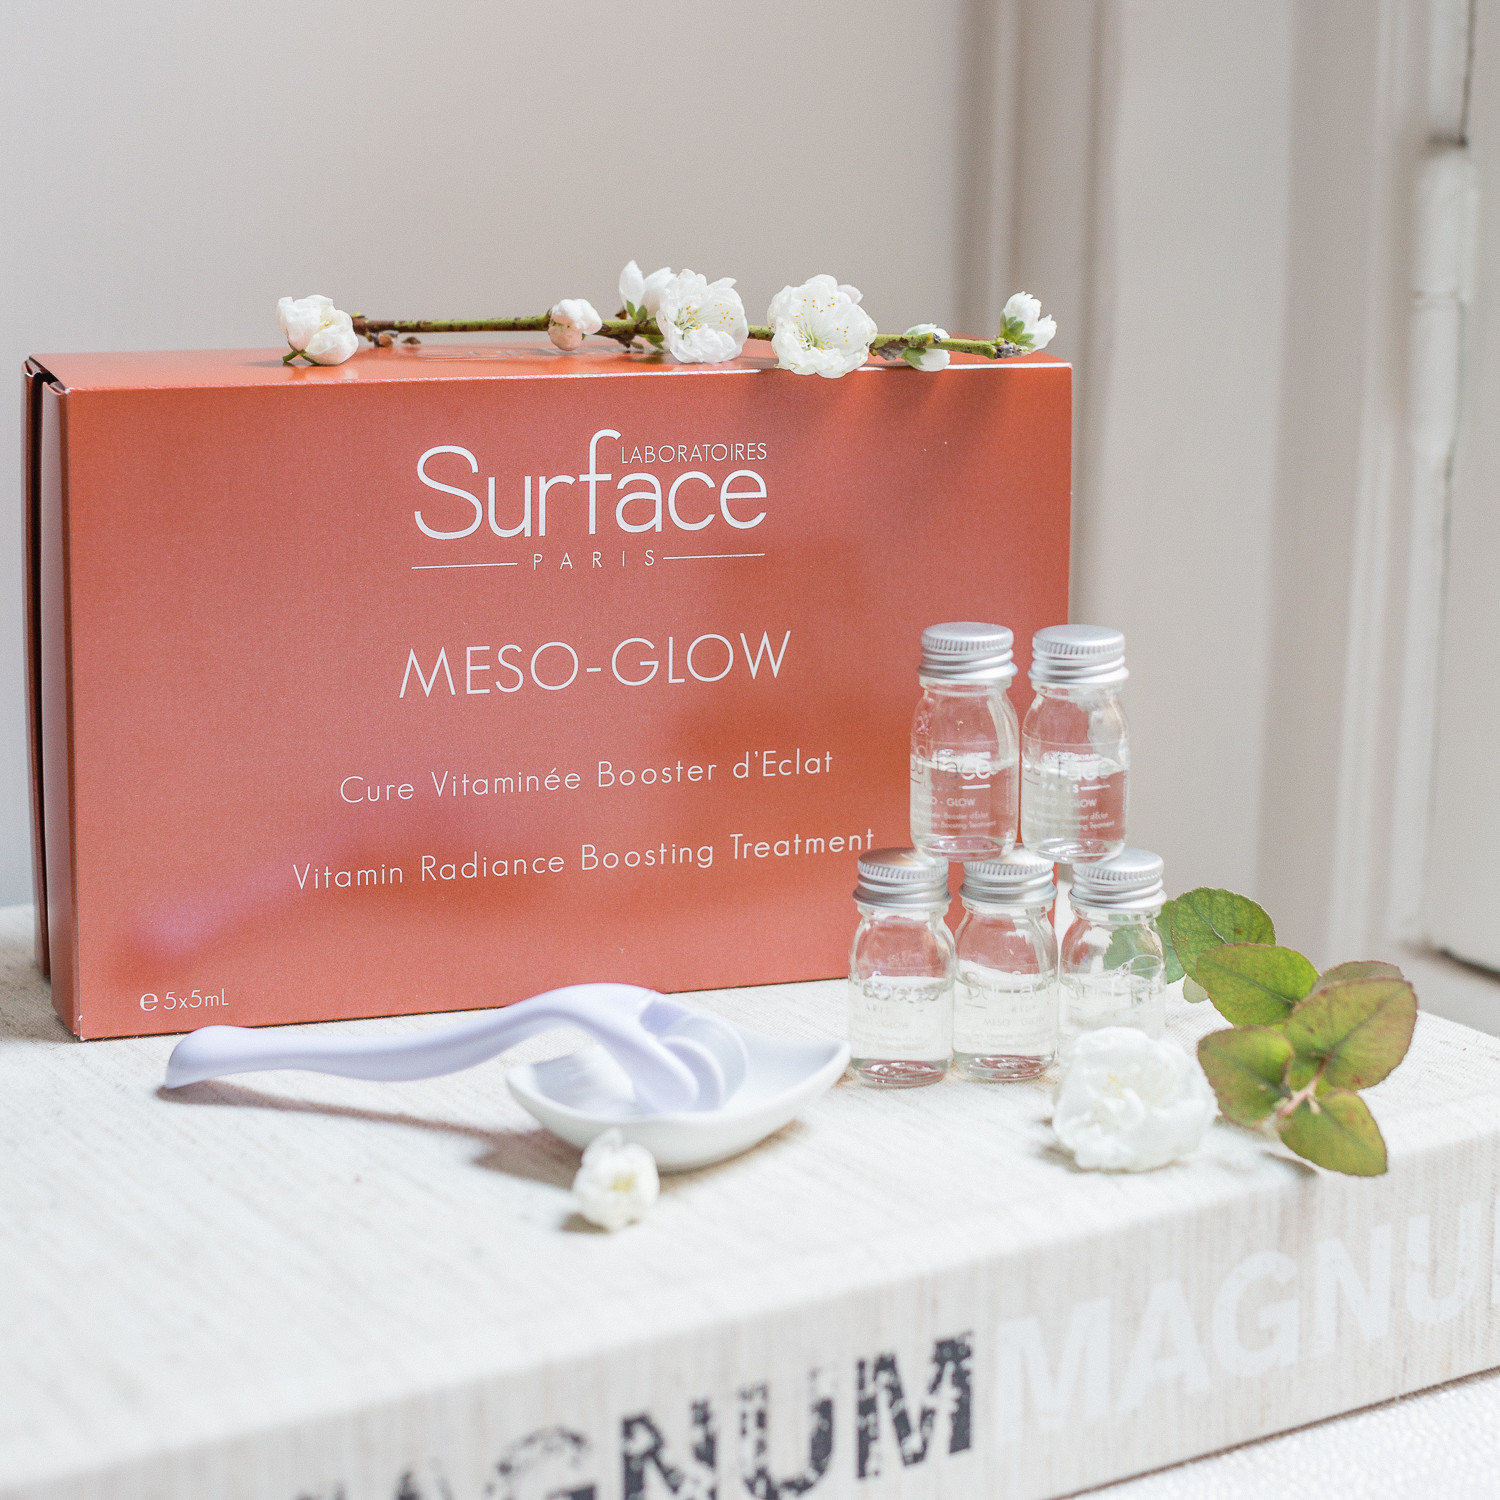 Surface Paris At Home Mesotherapy Dermaroller Meso Glow